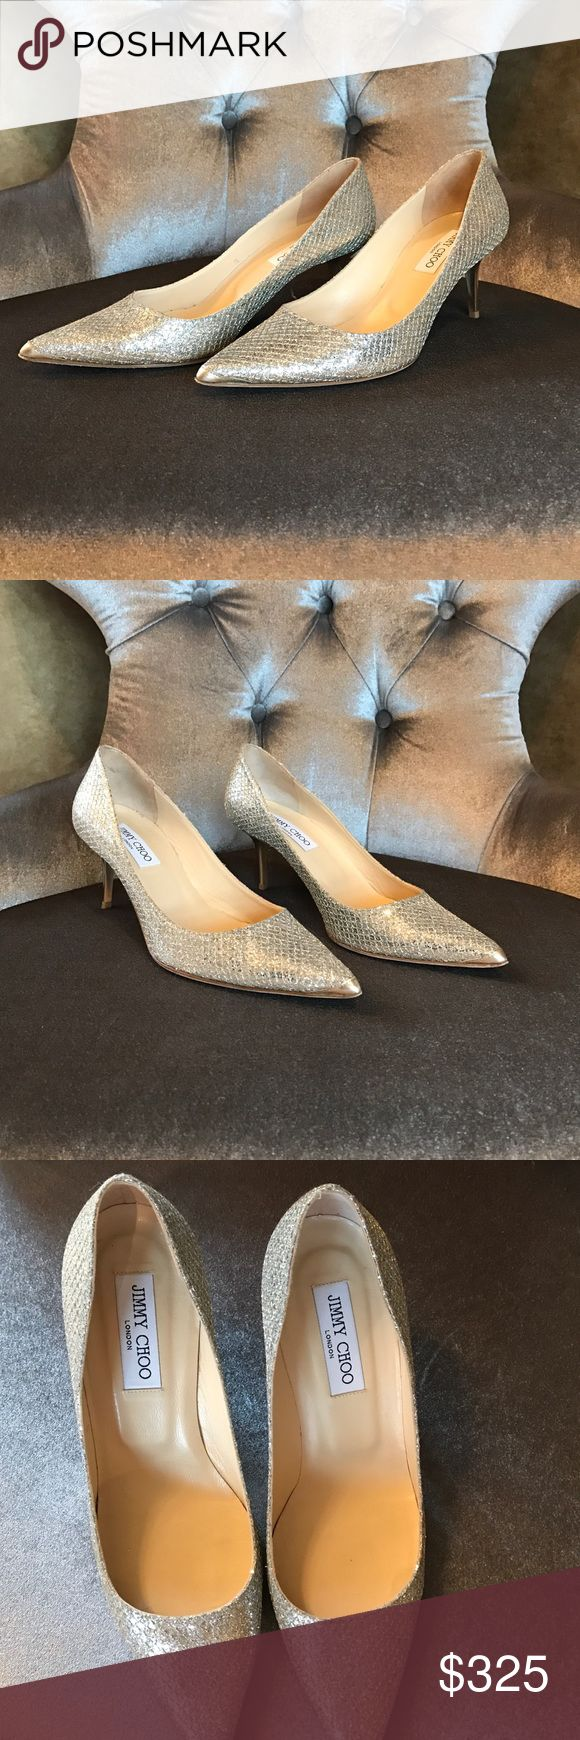 """Jimmy Choo Aurora Glitter Coated Leather Pumps Glittery lamé fabric. 2 1/2"""" metallic kitten heel. Pointed toe. Low-cut vamp. Leather insole and lining. Leather outsole. """"Aurora"""" is made in Italy. Jimmy Choo Shoes Heels"""